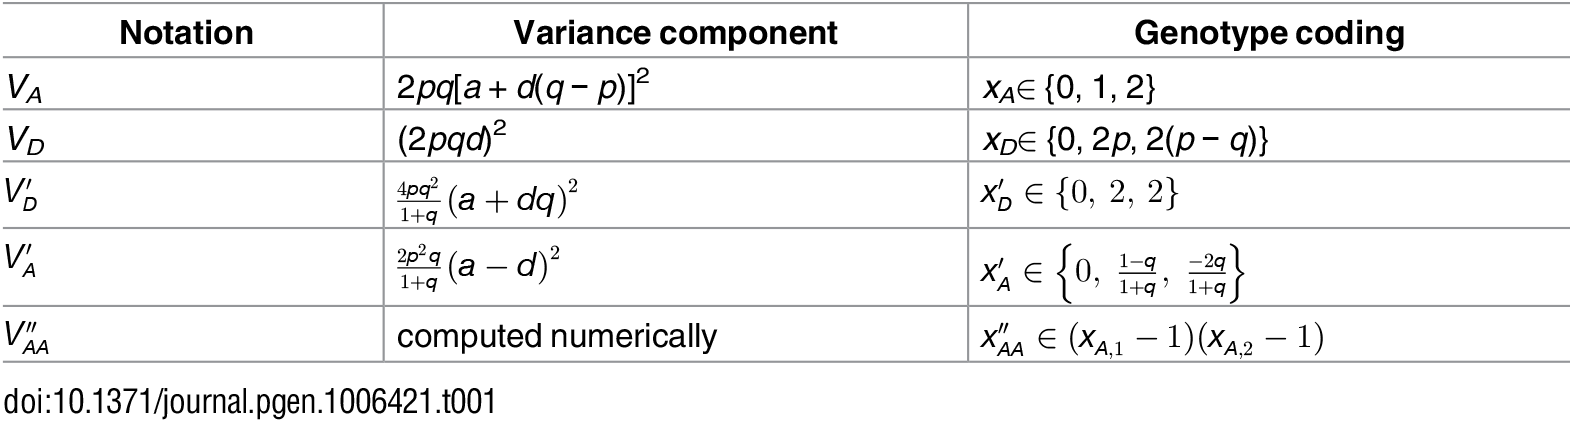 Notations and definitions of variance components in this study.